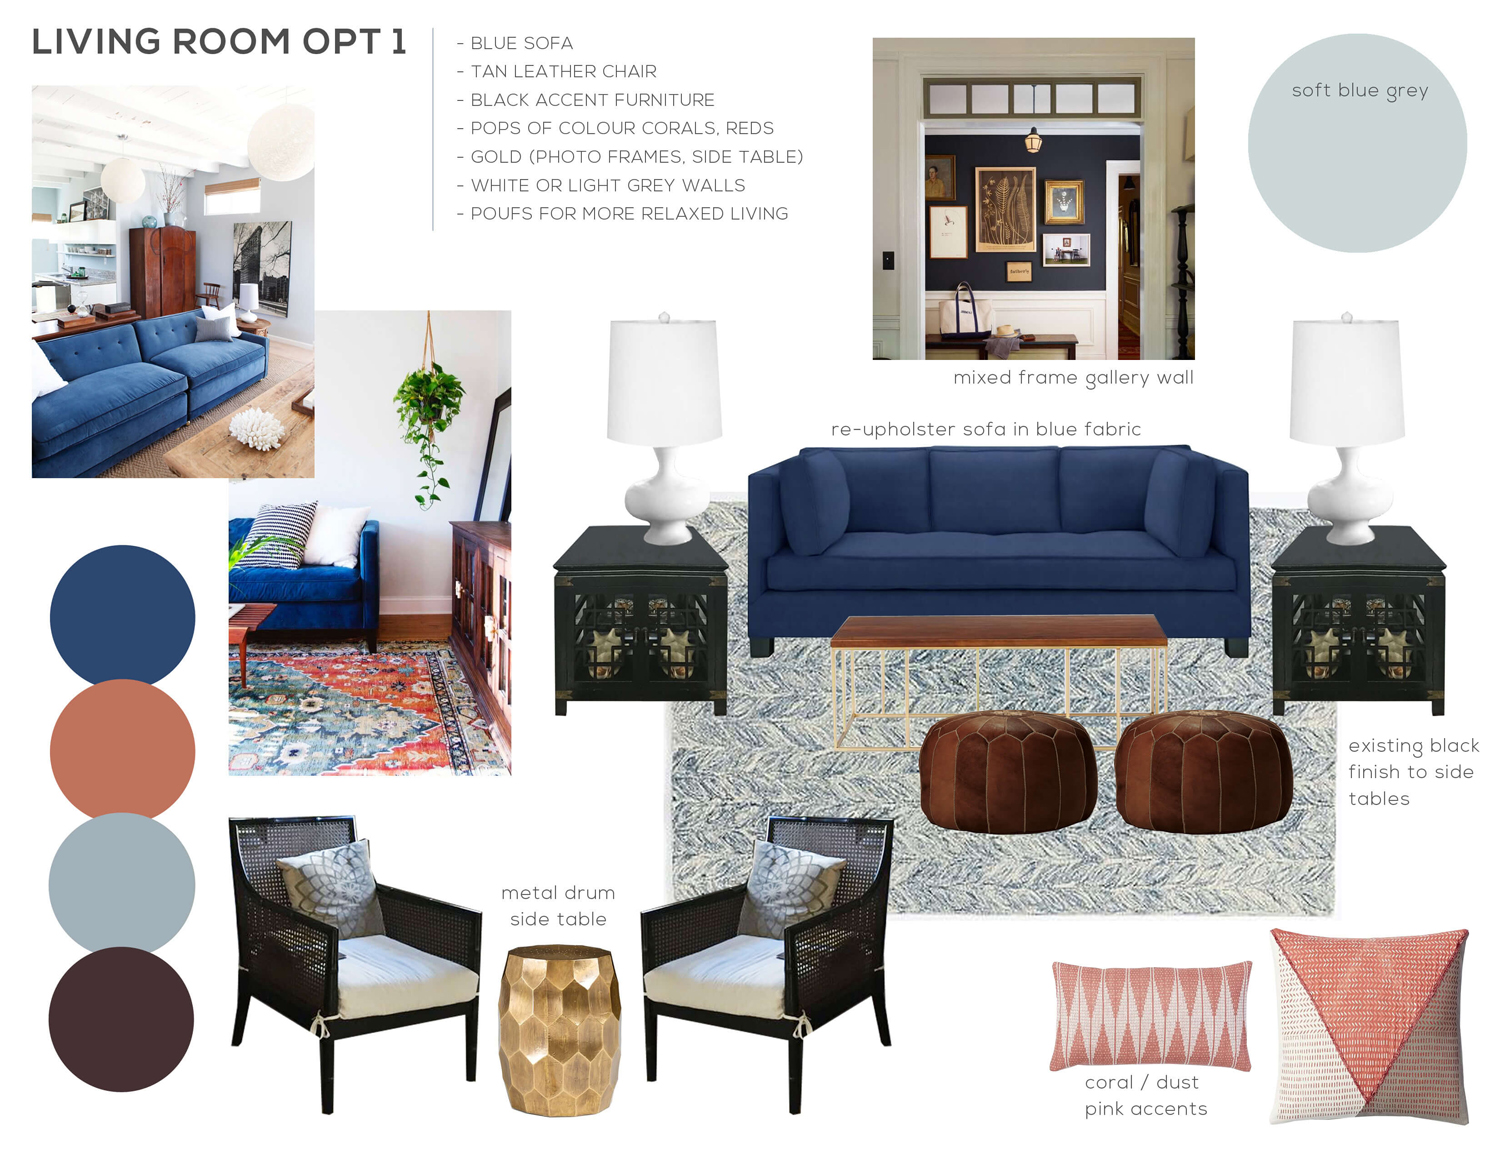 GINNY_MACDONALD_SILVER_LAKE_HILLS_LIVING_ROOM_FIRST_MOODBOARD